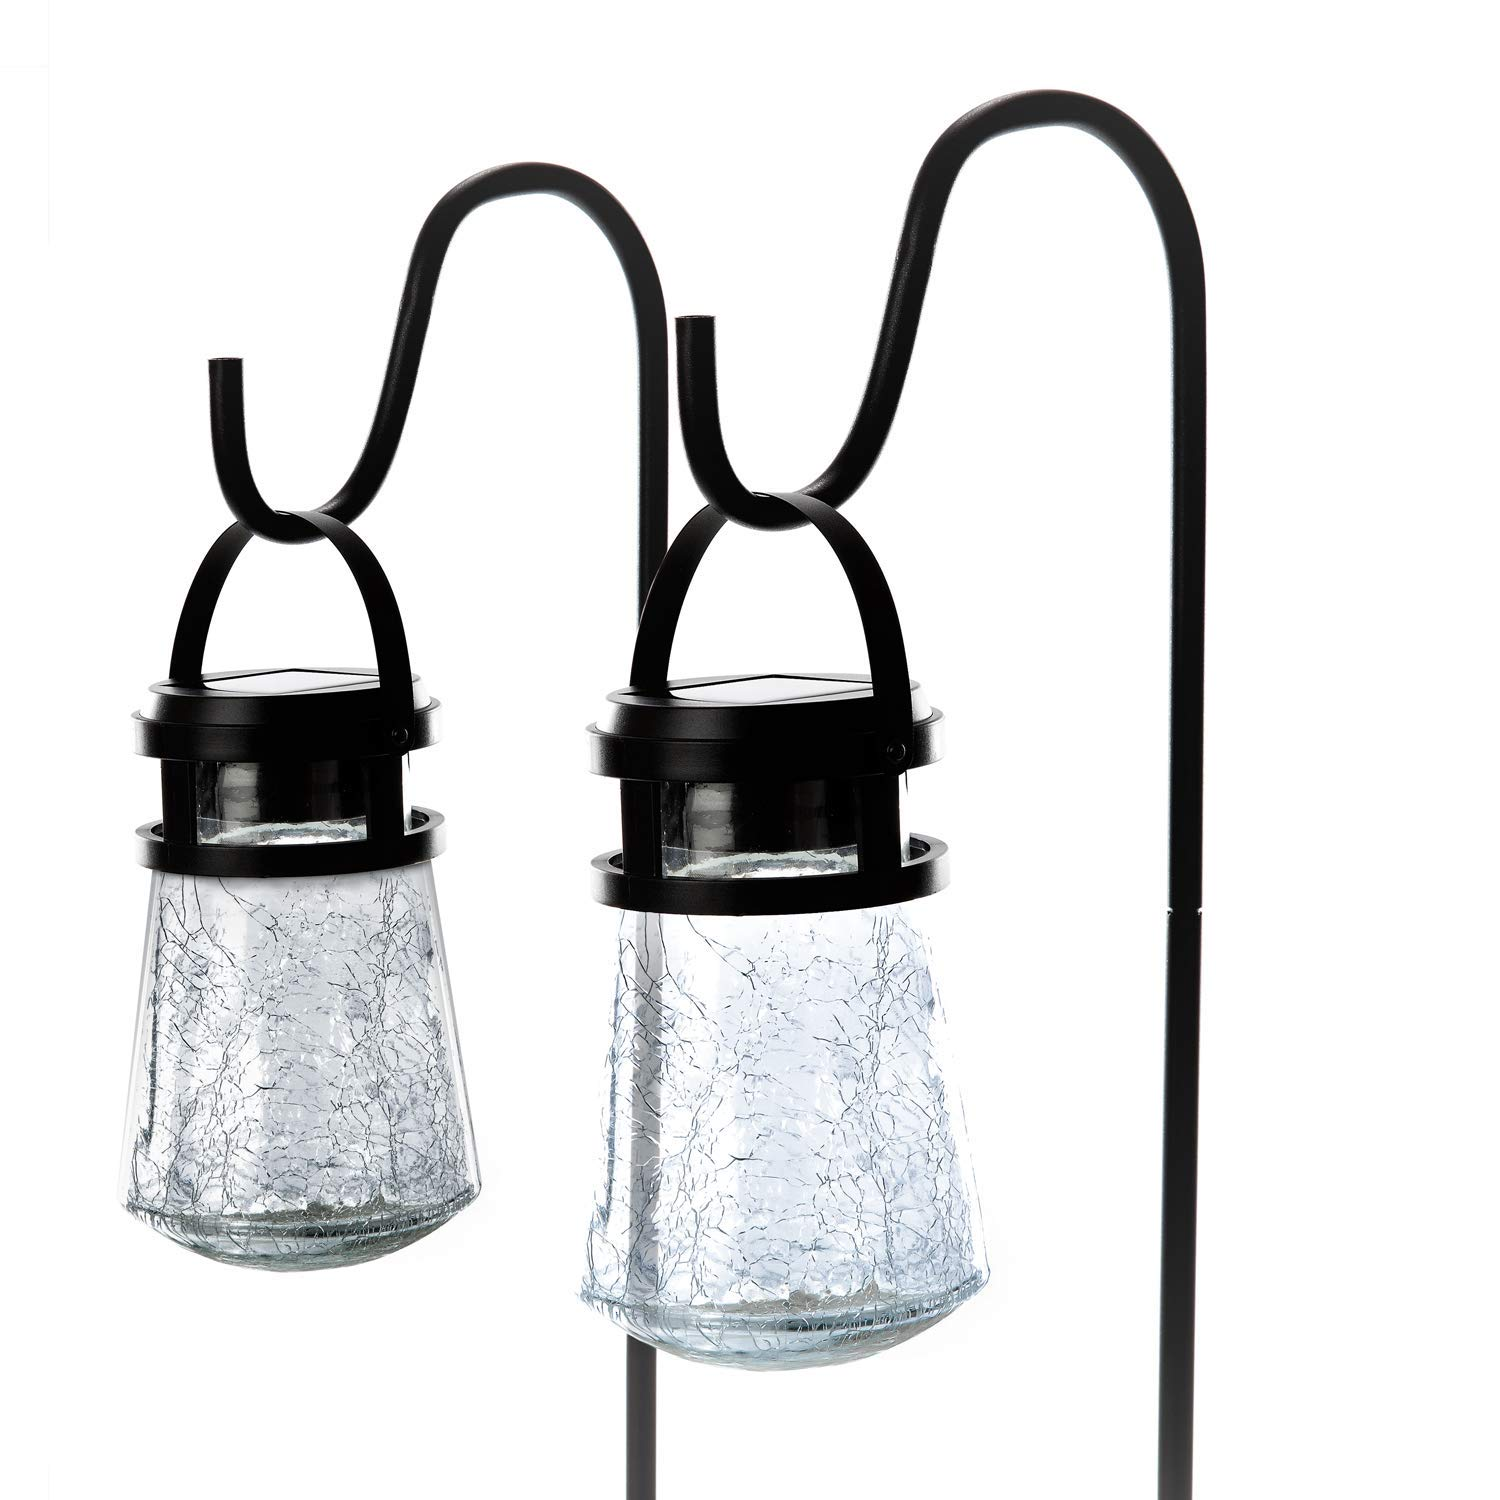 Home Zone Security Solar Pathway Lights - Outdoor 3000K Solar Crackle Glass Garden Lights with No Wiring Required (2-Pack)